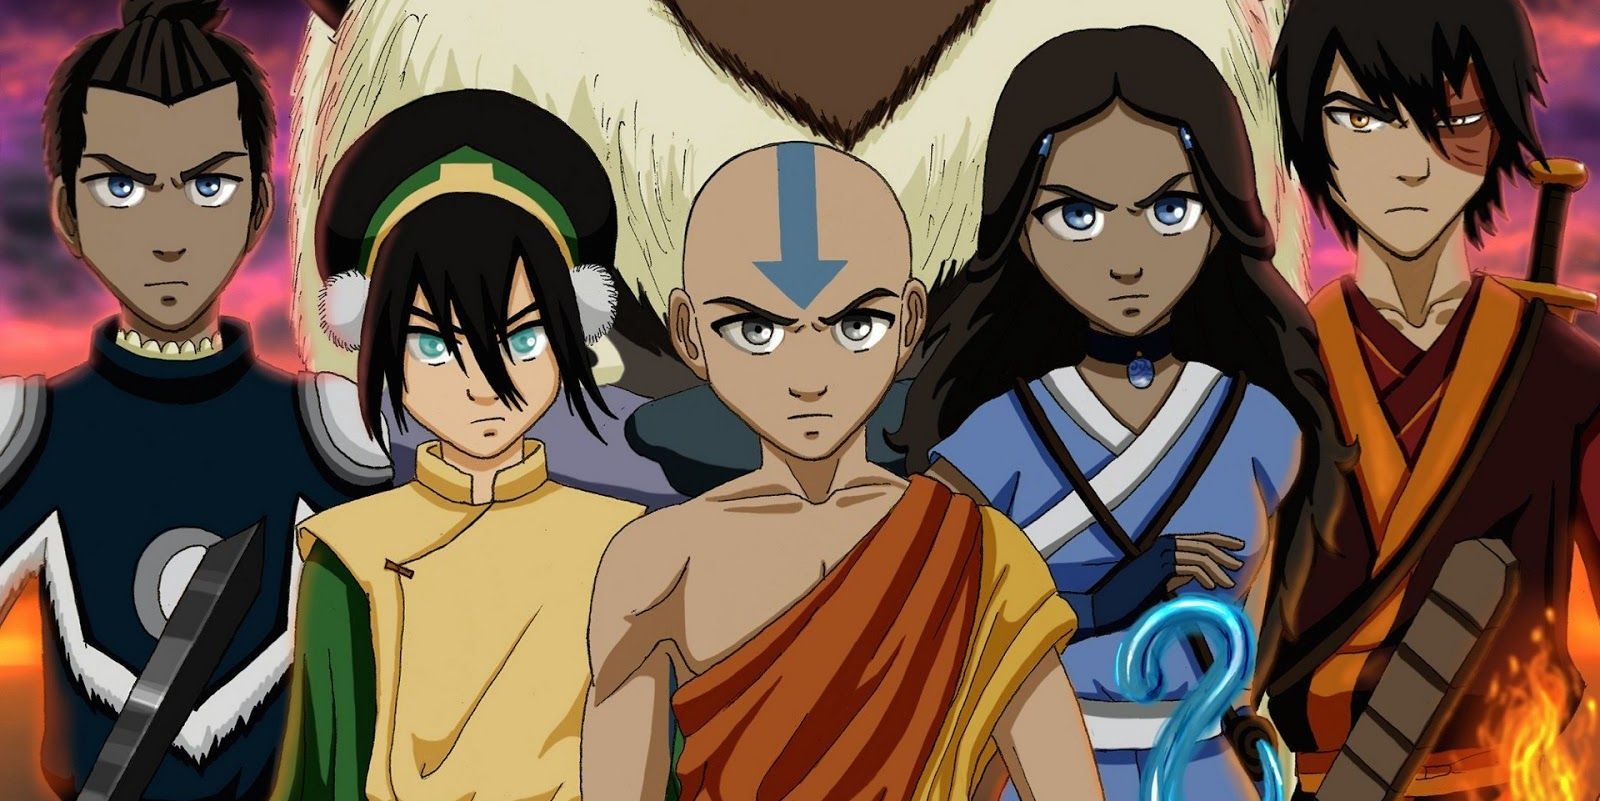 Myers-Briggs Personality Types Of Avatar: The Last Airbender